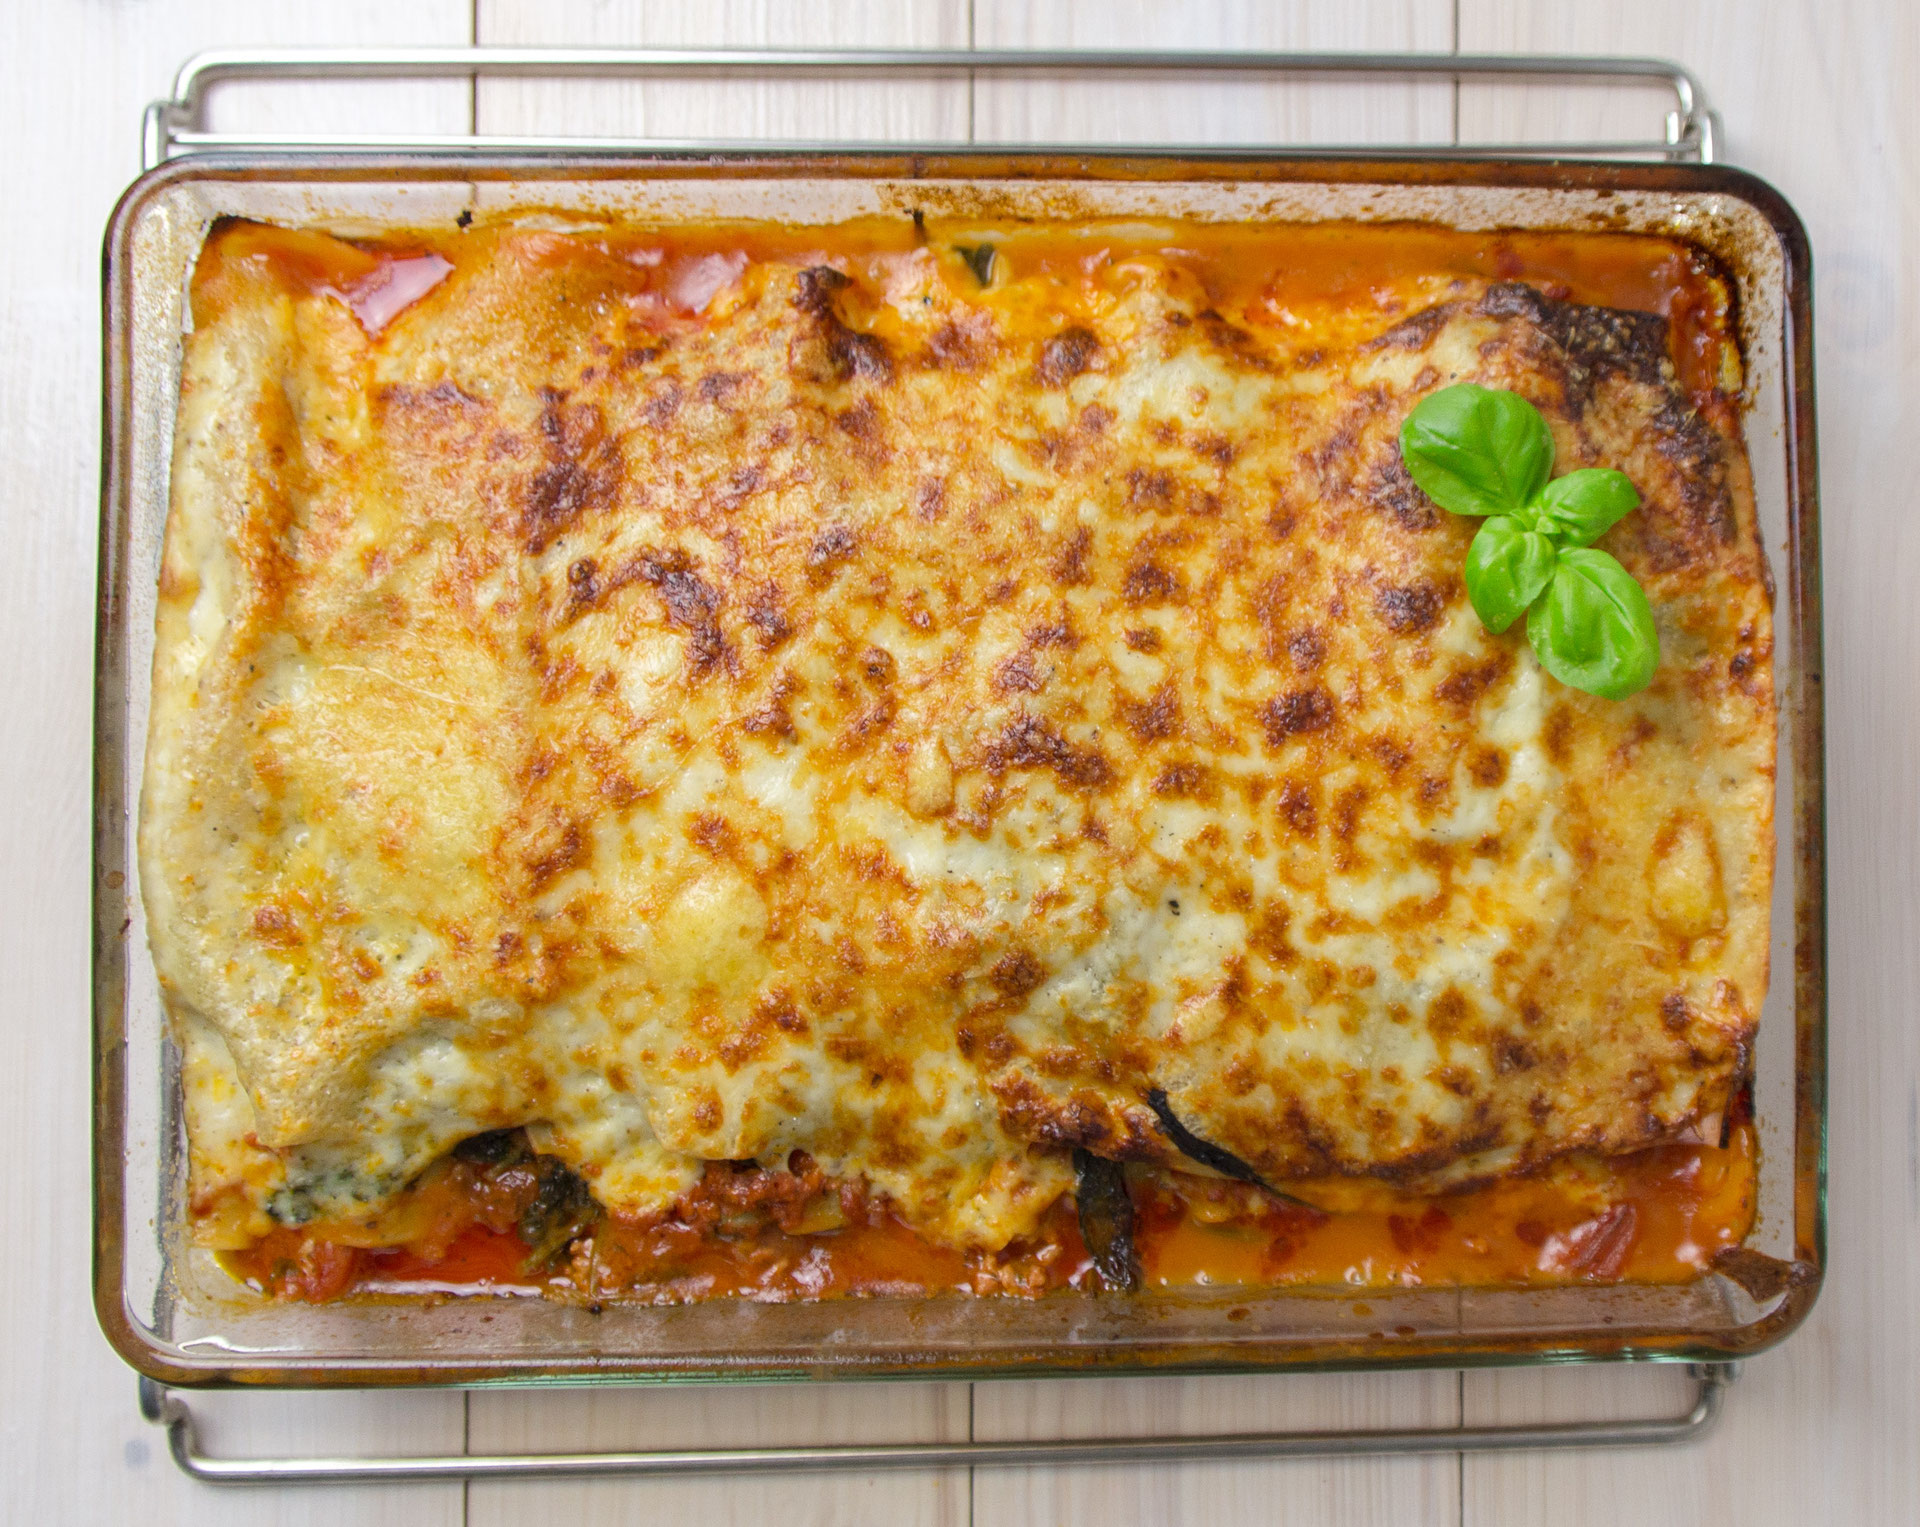 lasagne al forno mit spinat rezepte f r steamer und dampfgarer foodblog. Black Bedroom Furniture Sets. Home Design Ideas